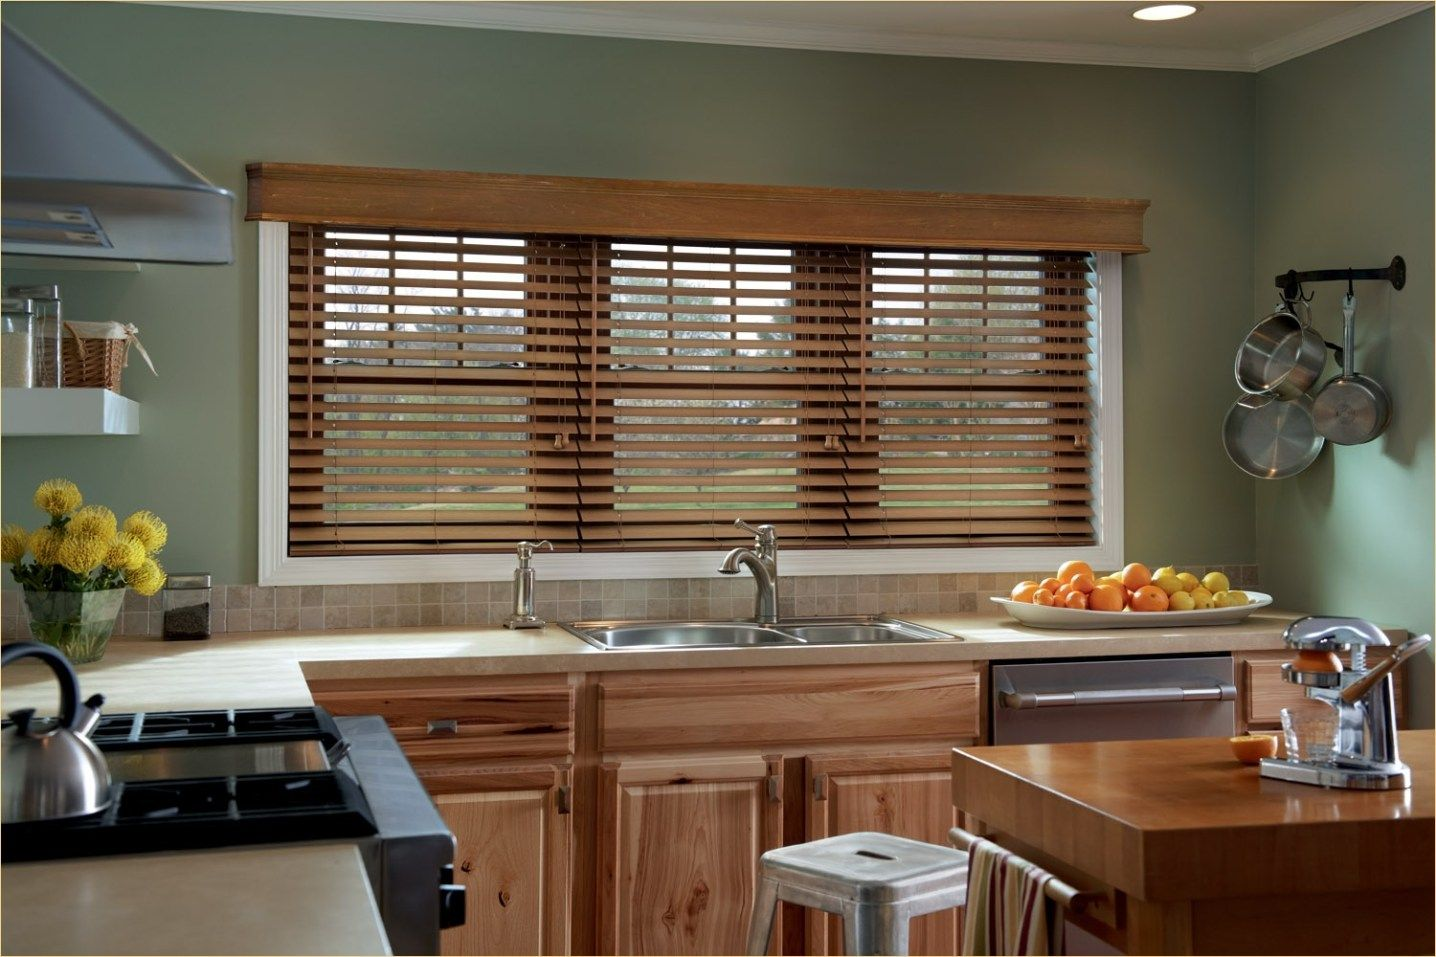 9 Stunning Oak Kitchen with Blinds Ideas - DecoRecord  Wooden